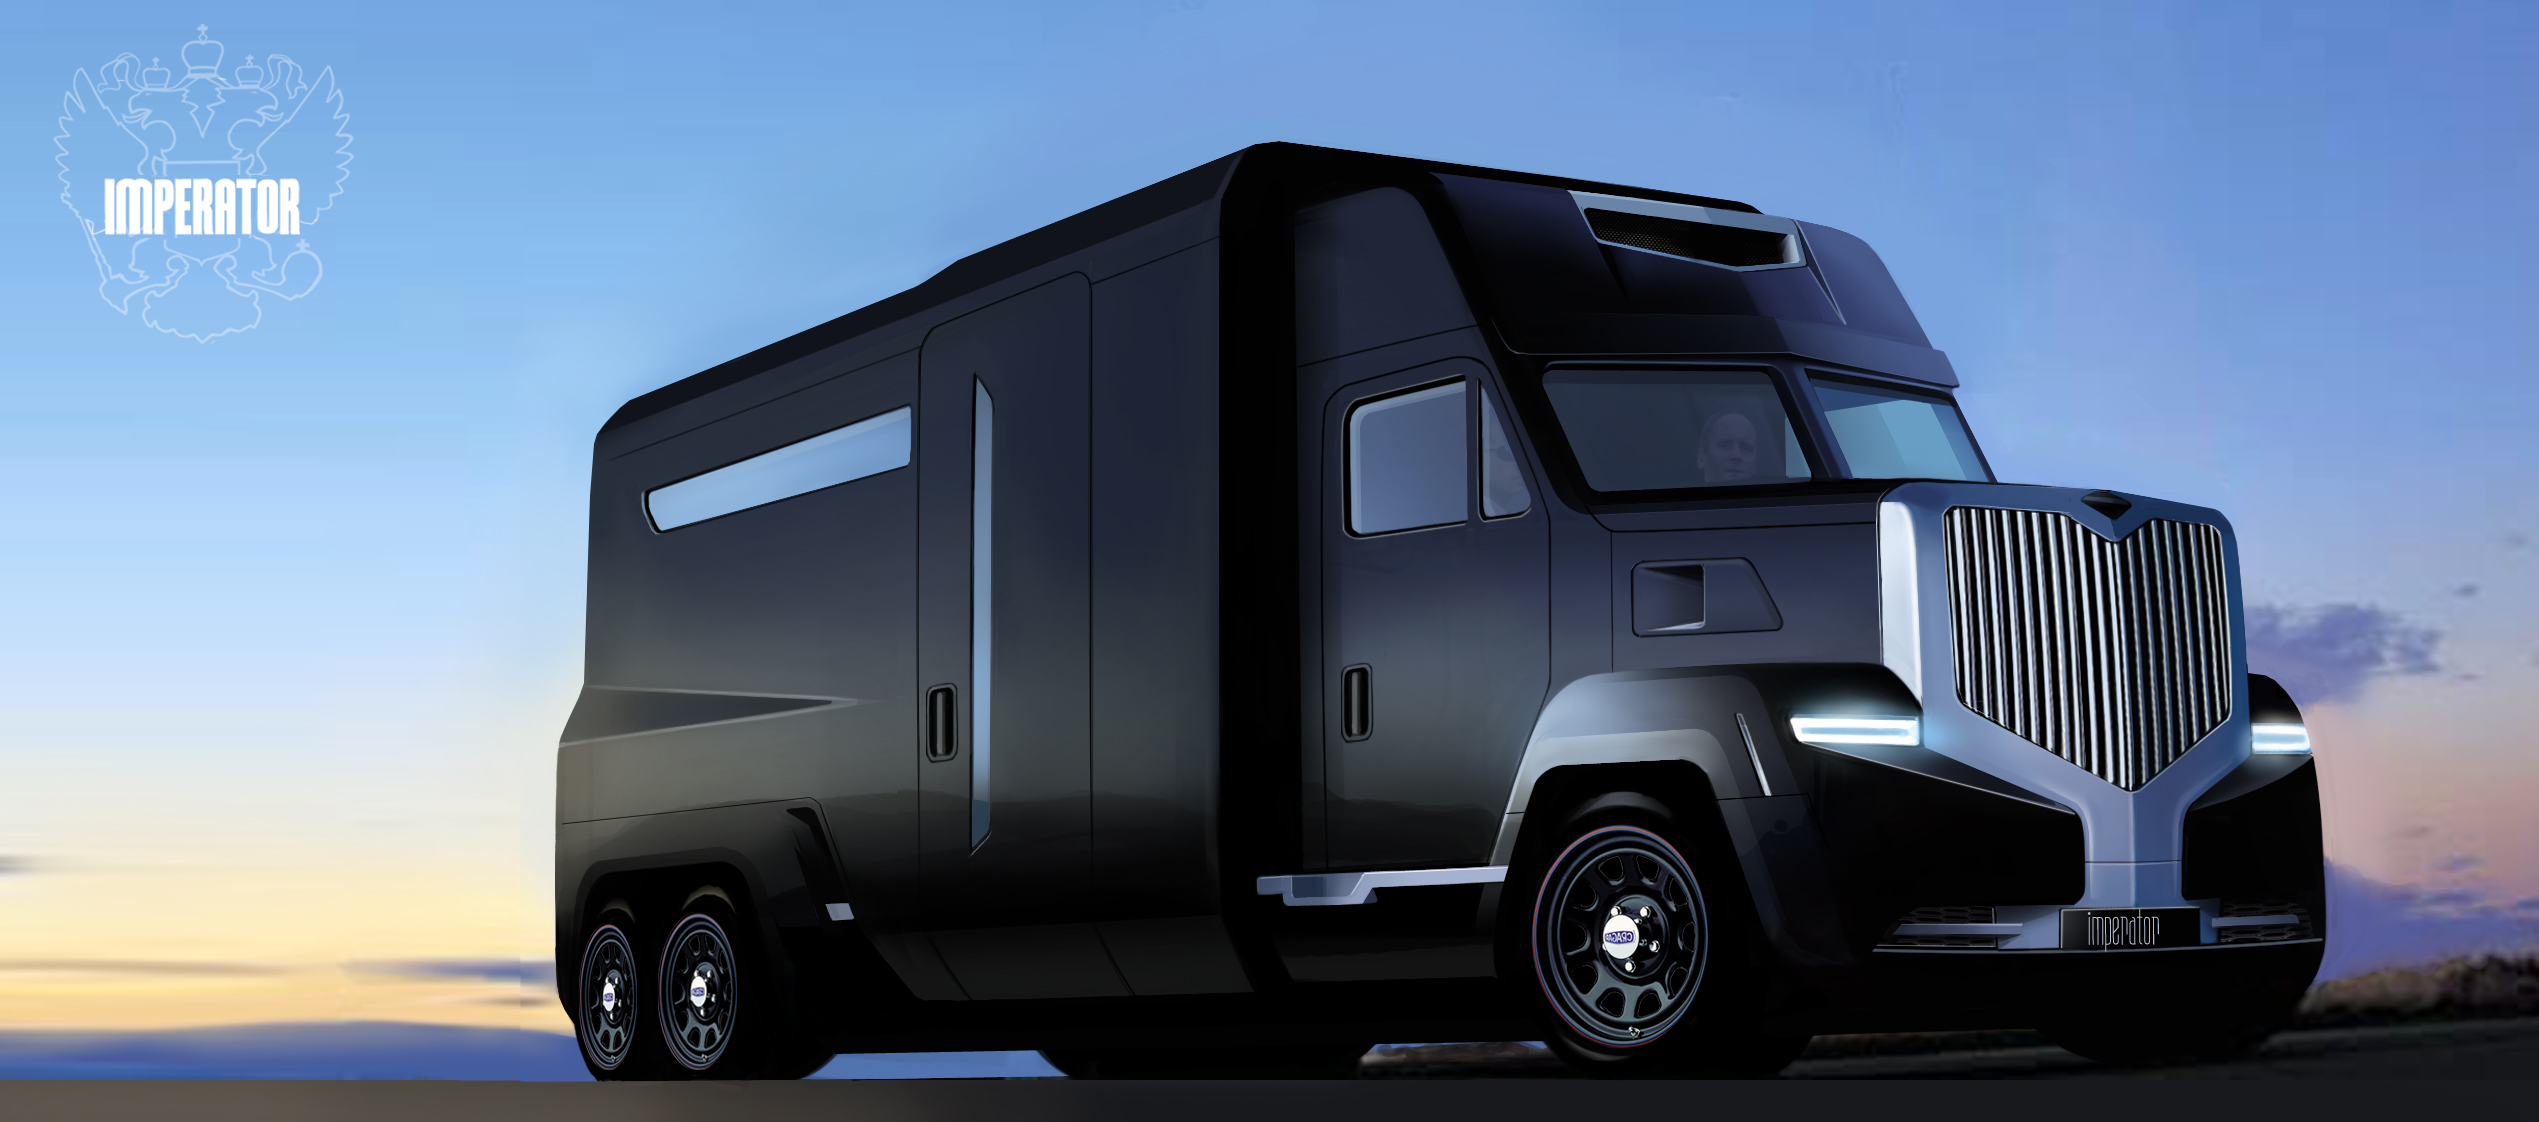 Image of truck designed by Flowers  School of Technology